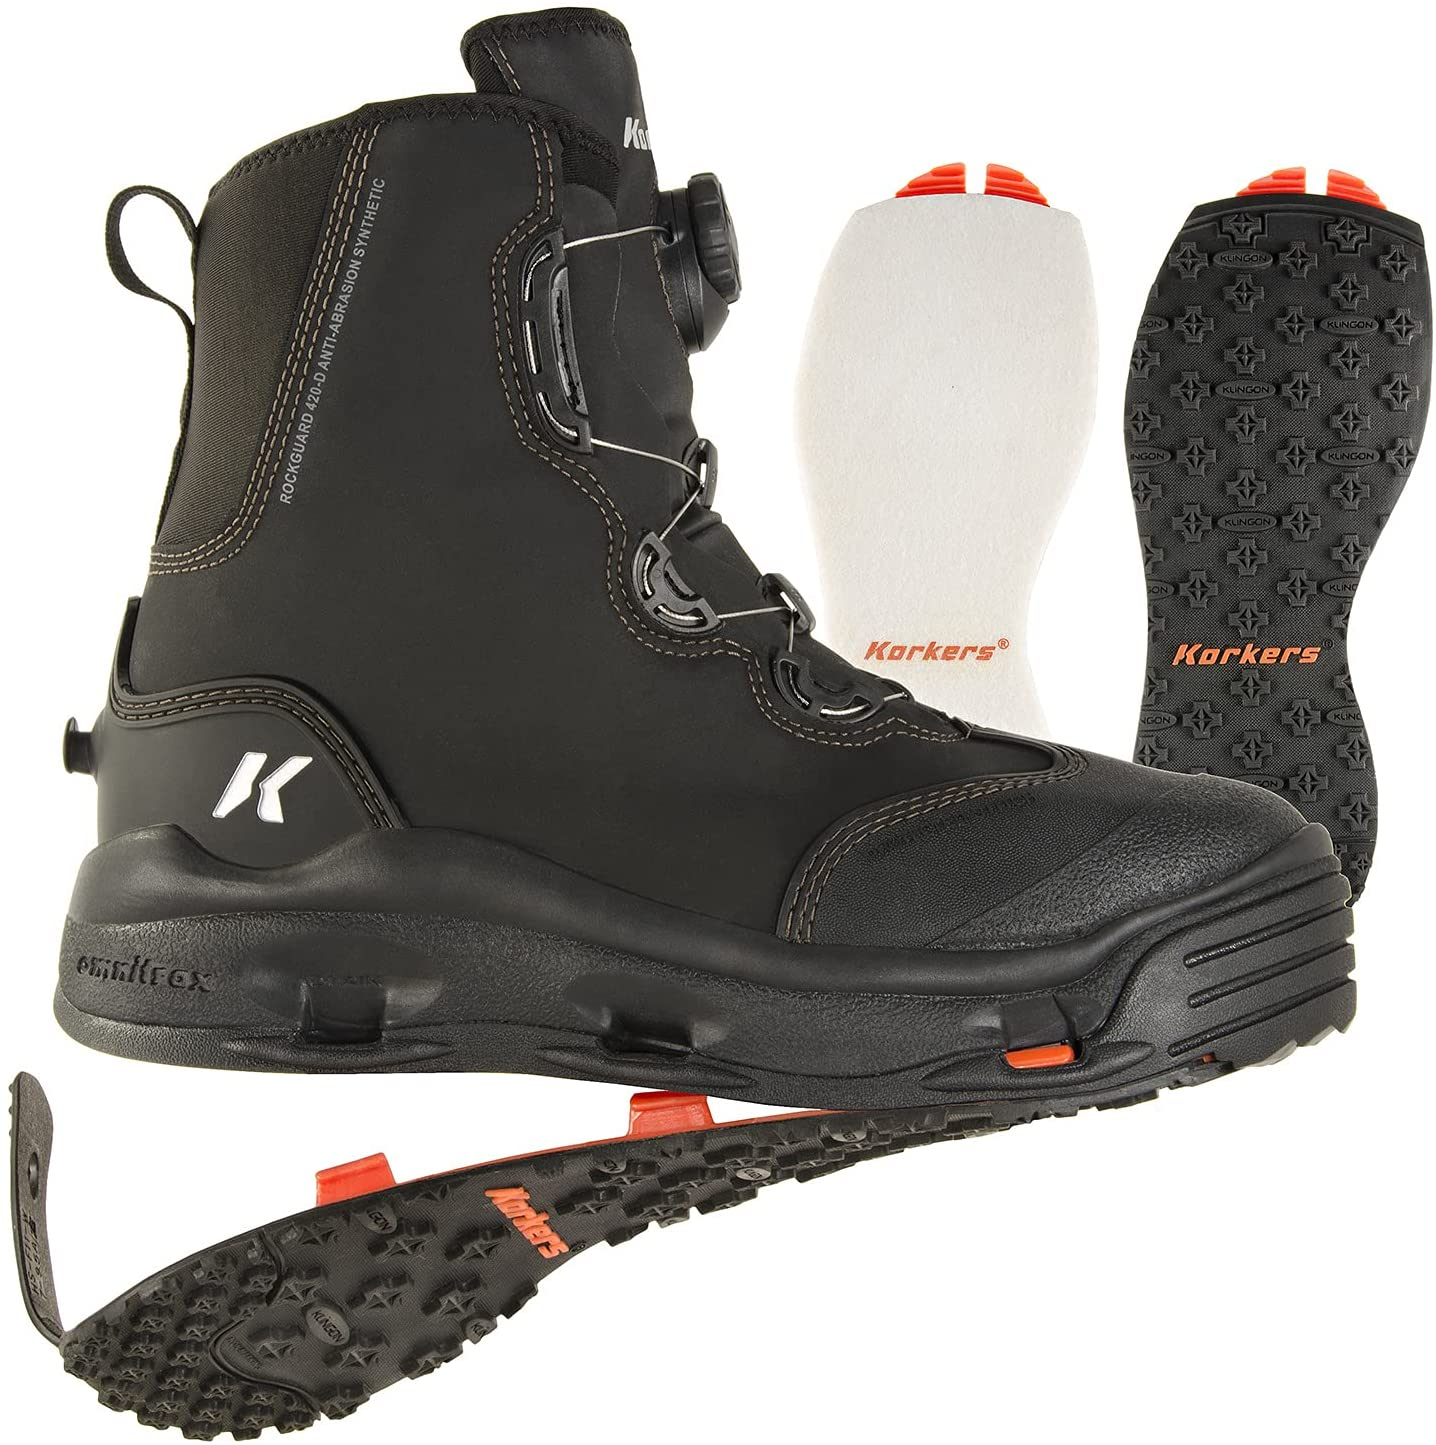 Korkers Devil's Wading boots reviews